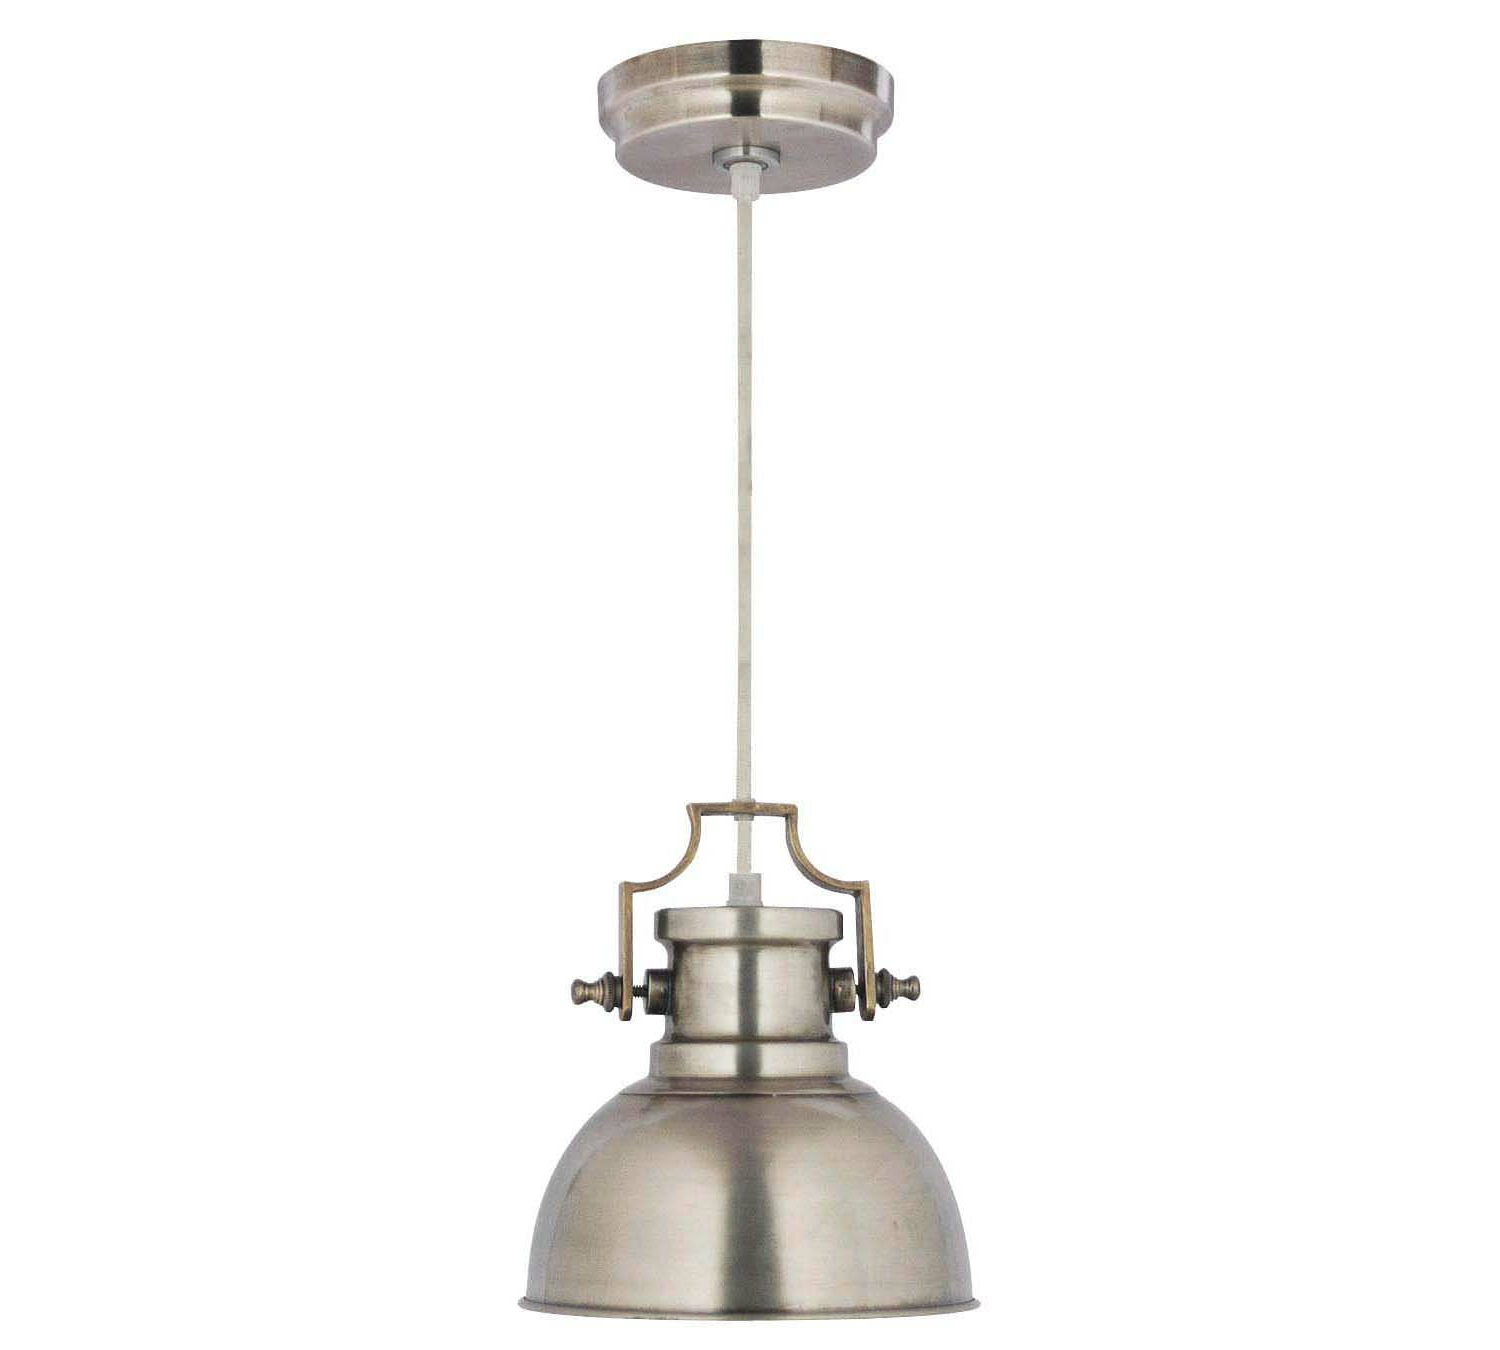 Mueller 1 Light Single Dome Pendants Within Most Recent Jules 1 Light Single Dome Pendant (View 22 of 25)